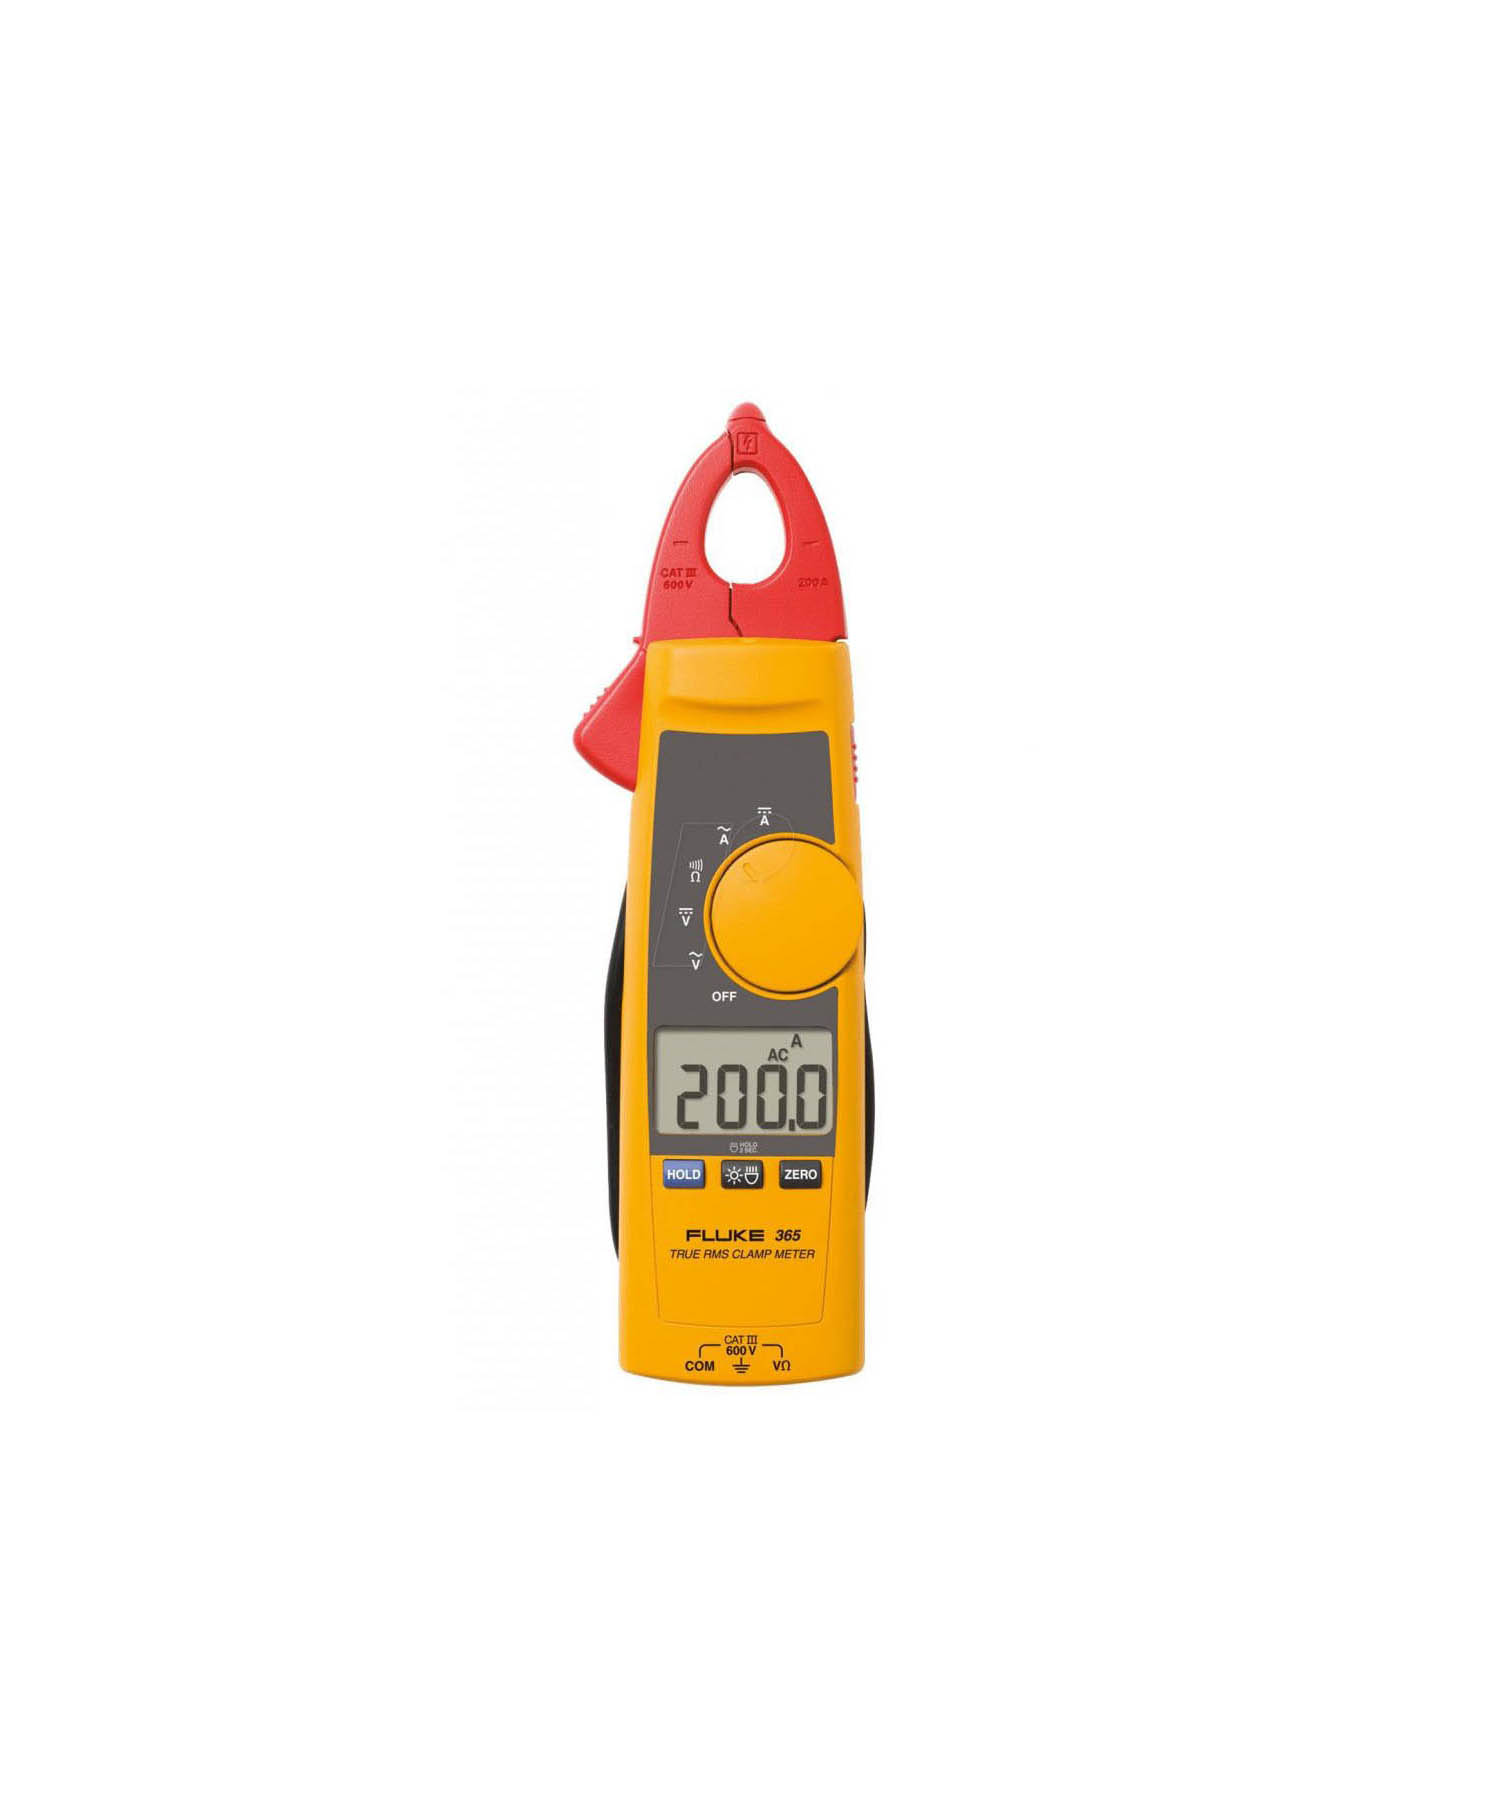 Fluke Detachable Jaw True RMS AC/DC Clamp Meter in Dubai, UAE - 365 from AABTools